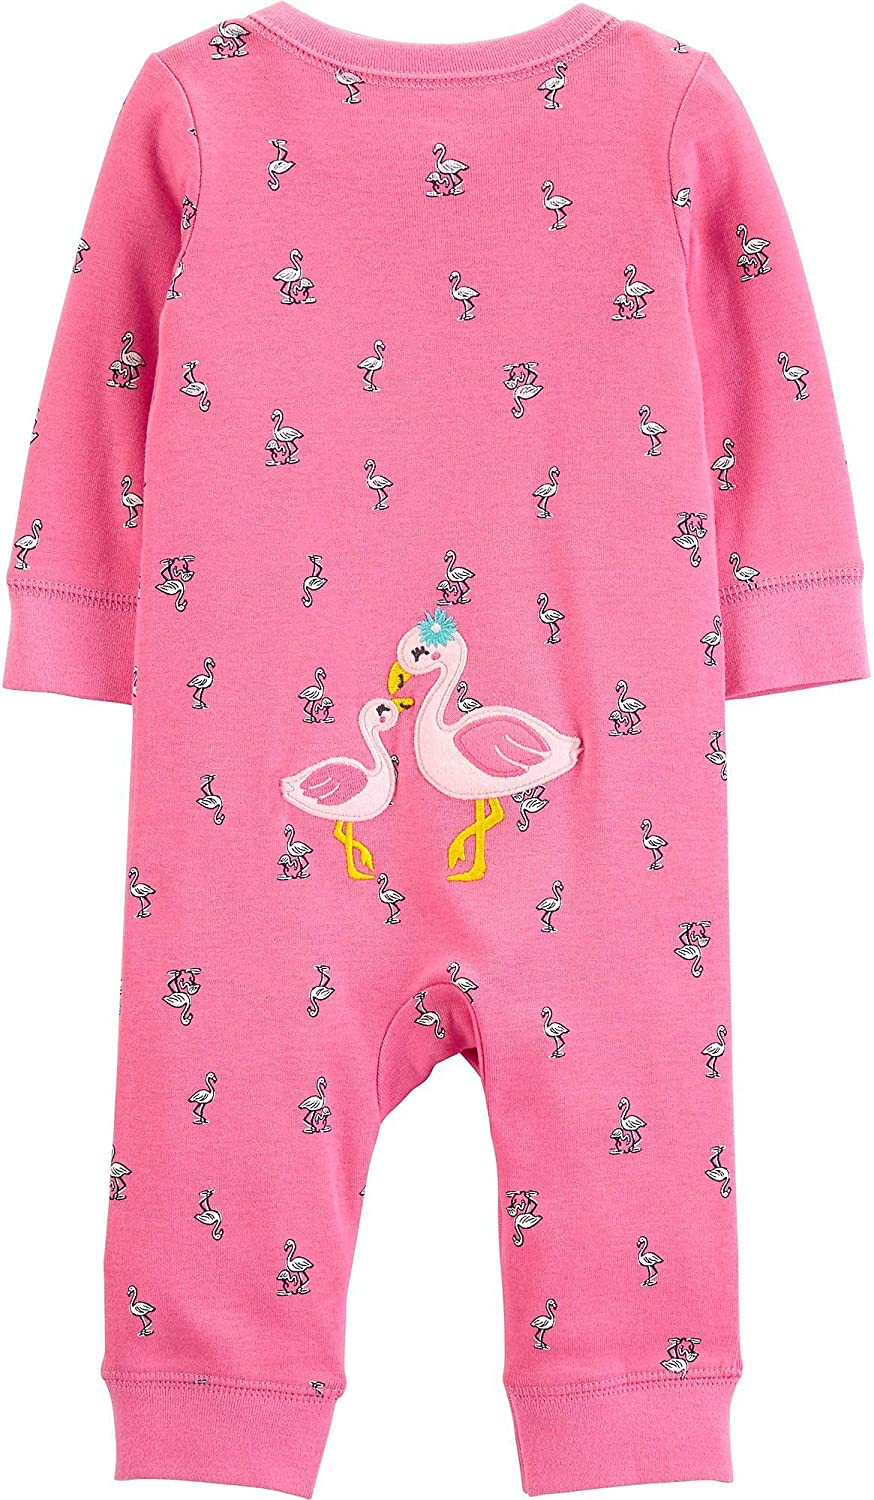 Carters Baby Girls Flamingo Bow Jumpsuit 9 Months Pink